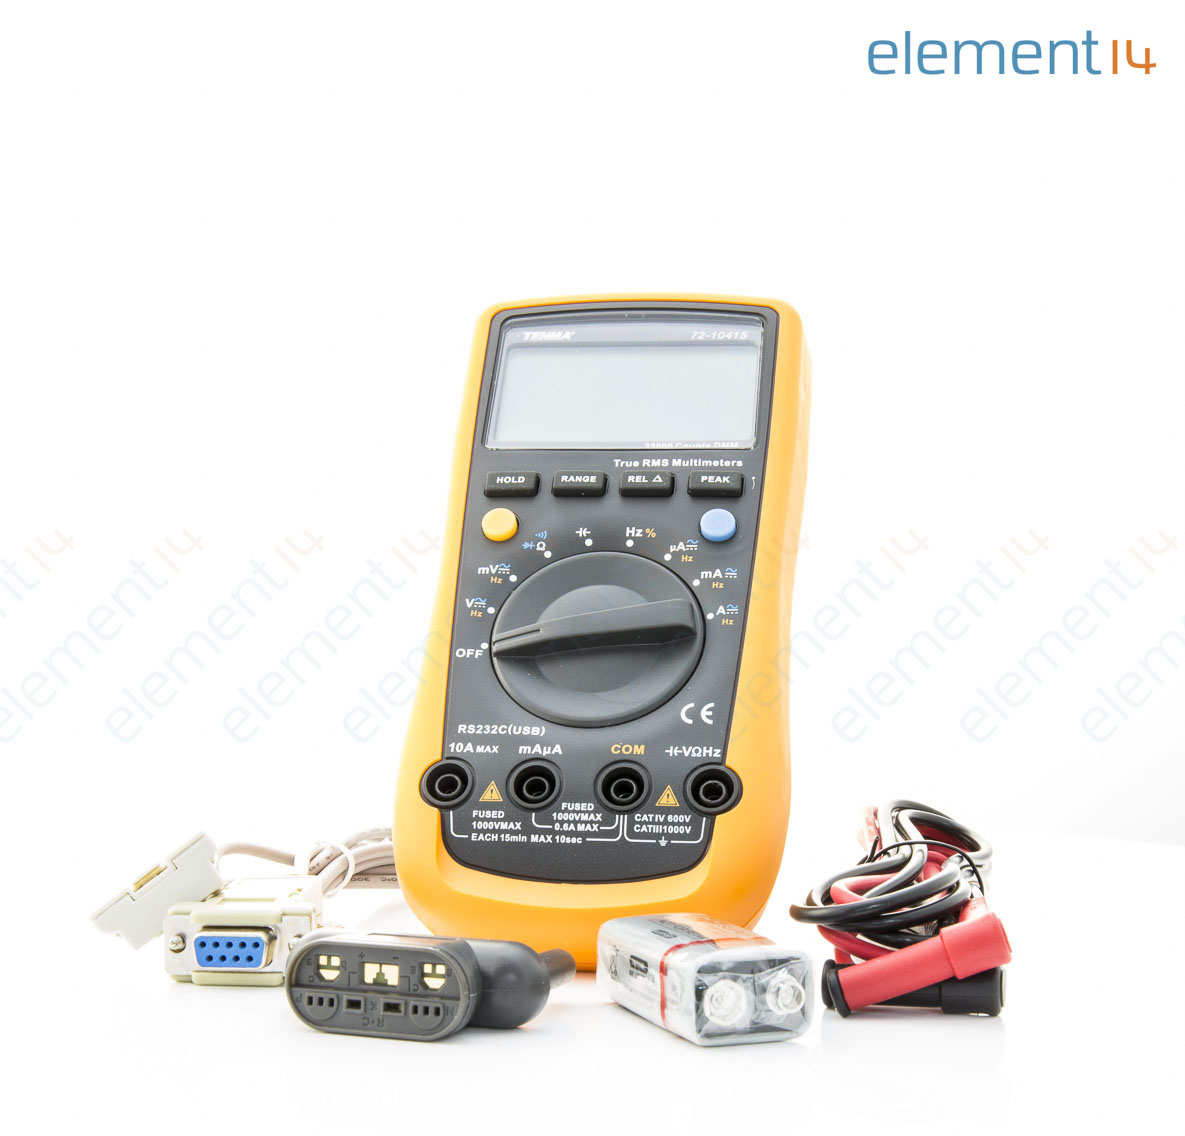 72 10415 Tenma Professional Digital Multimeter 22000 Count Wireless Testing A Pt2262based Remote Control Element14 Add To Compare